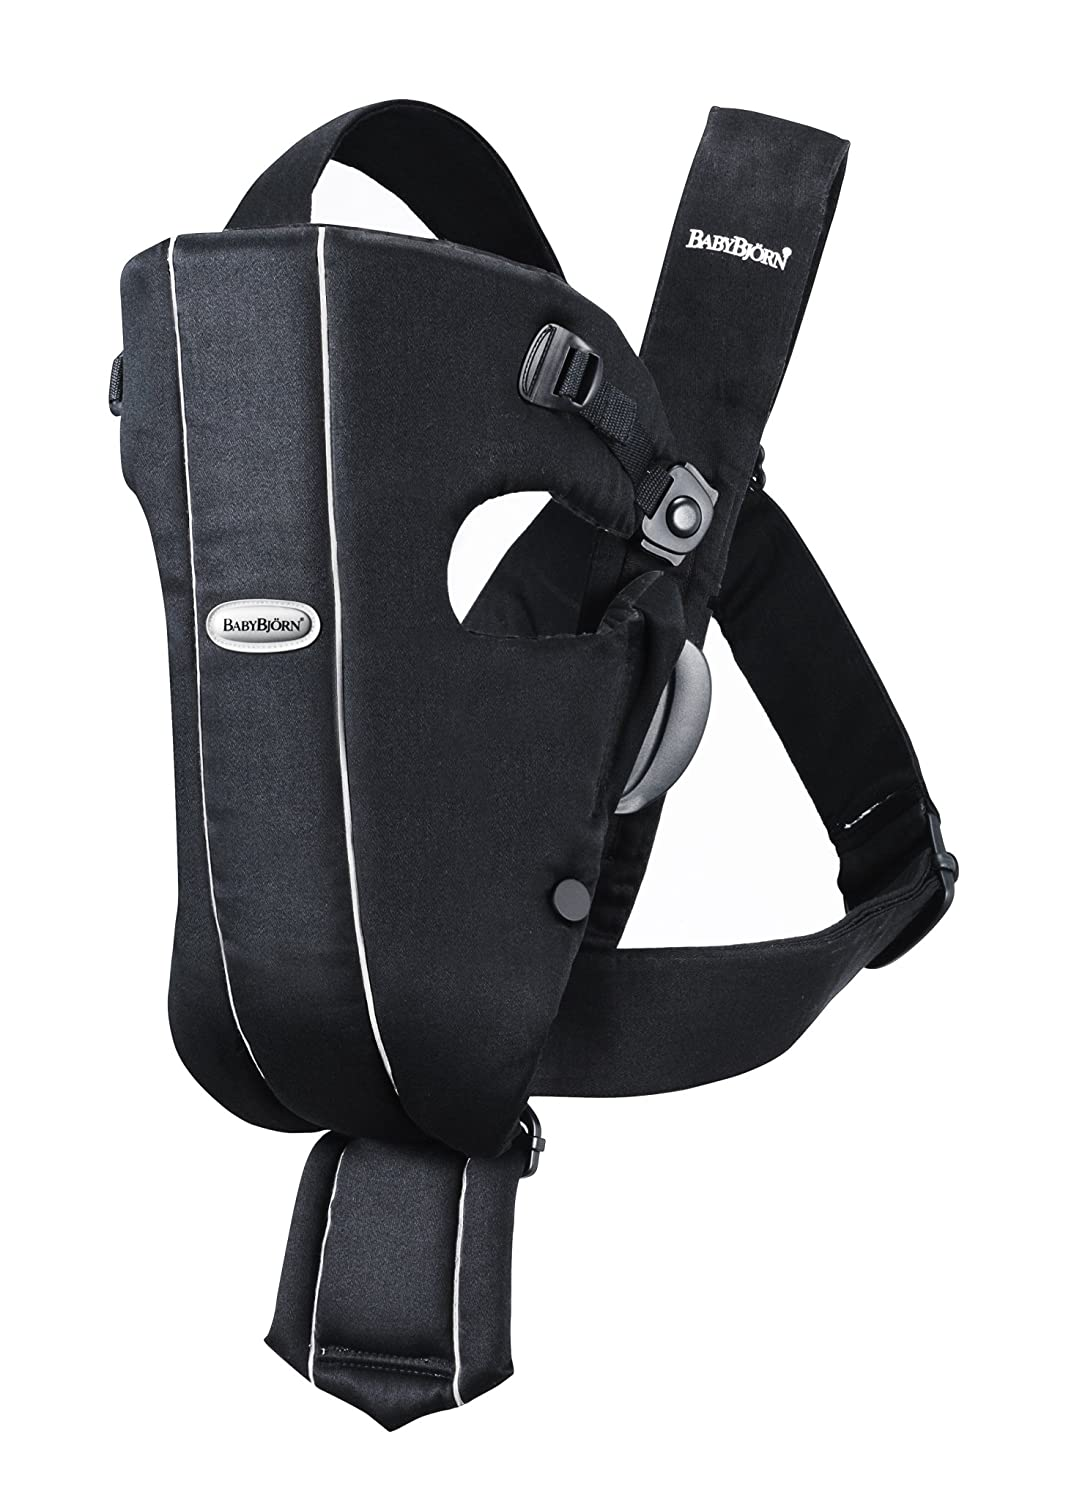 BABYBJORN Baby Carrier Original. Click for more must-haves for 1st year parents.